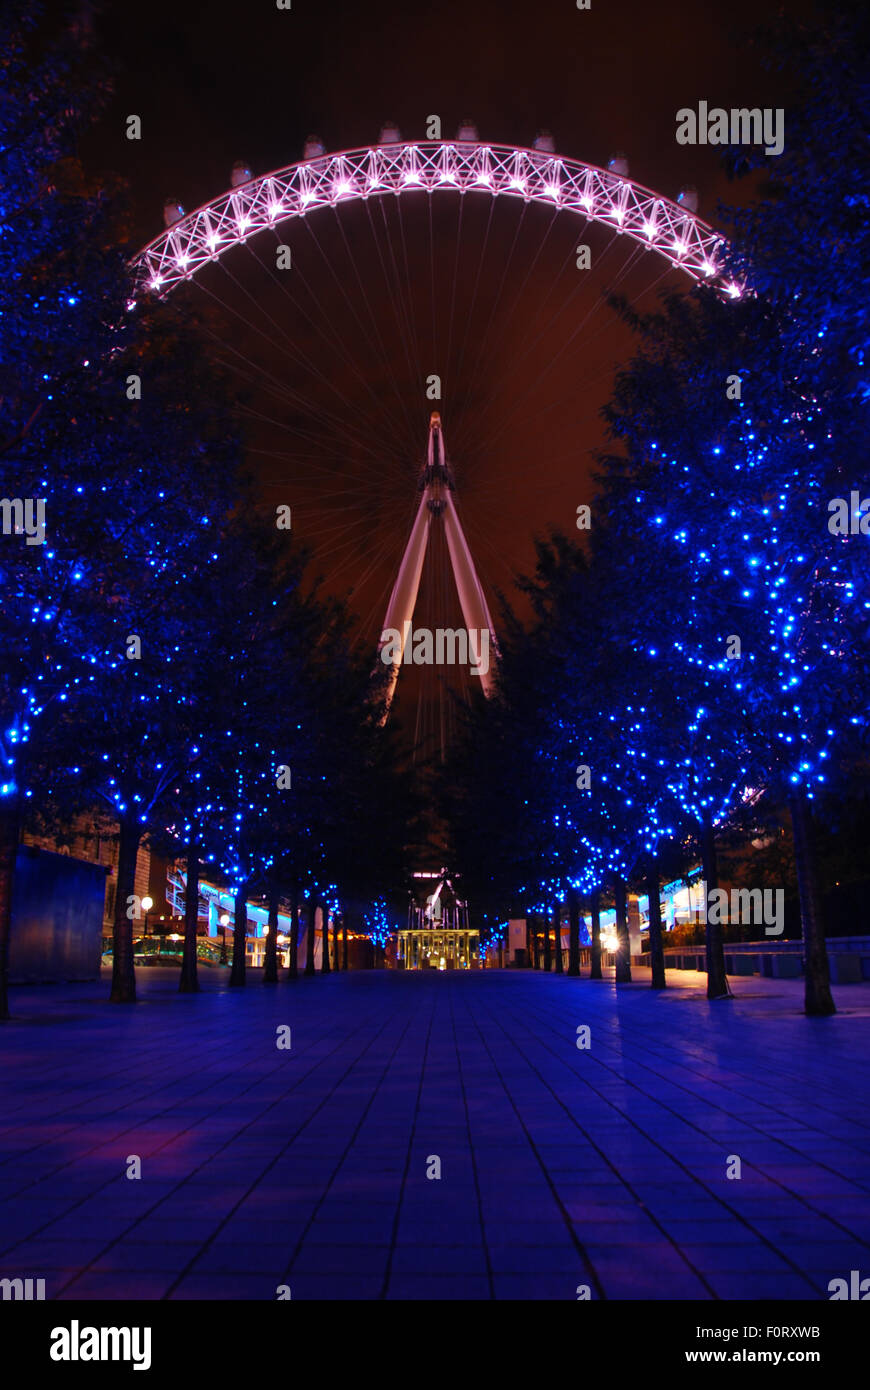 London, United Kingdom - July 18, 2009: London Eye, at night with blue light refection - Stock Image